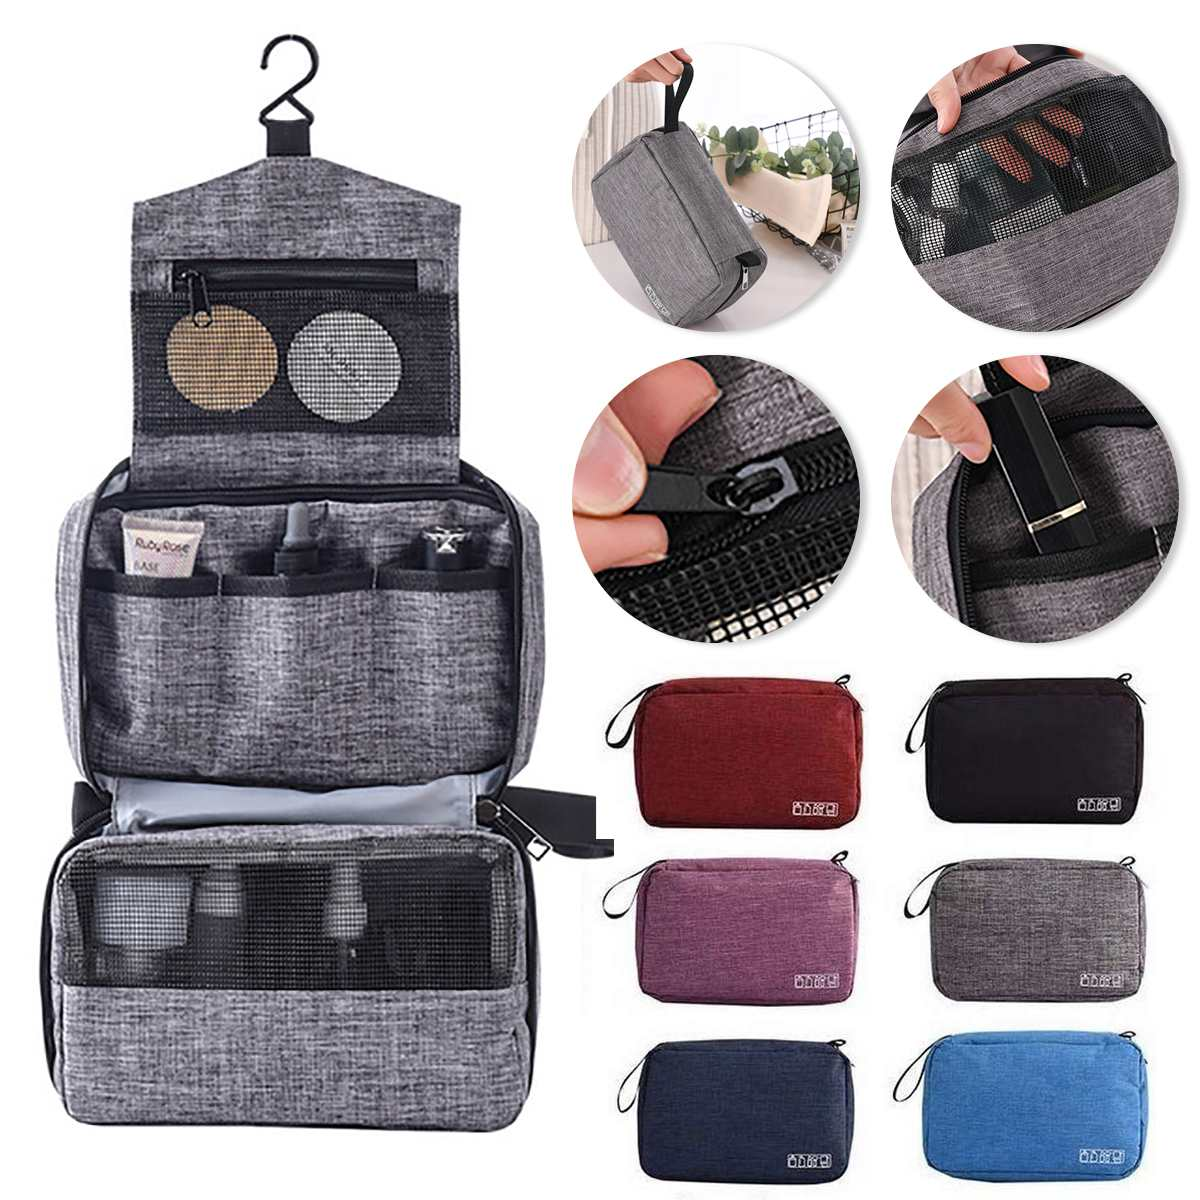 Waterproof Multifunction Hanging Travel Toiletry Bag For Men And Women Makeup Bag Bathroom And Shower Organizer Toilettas